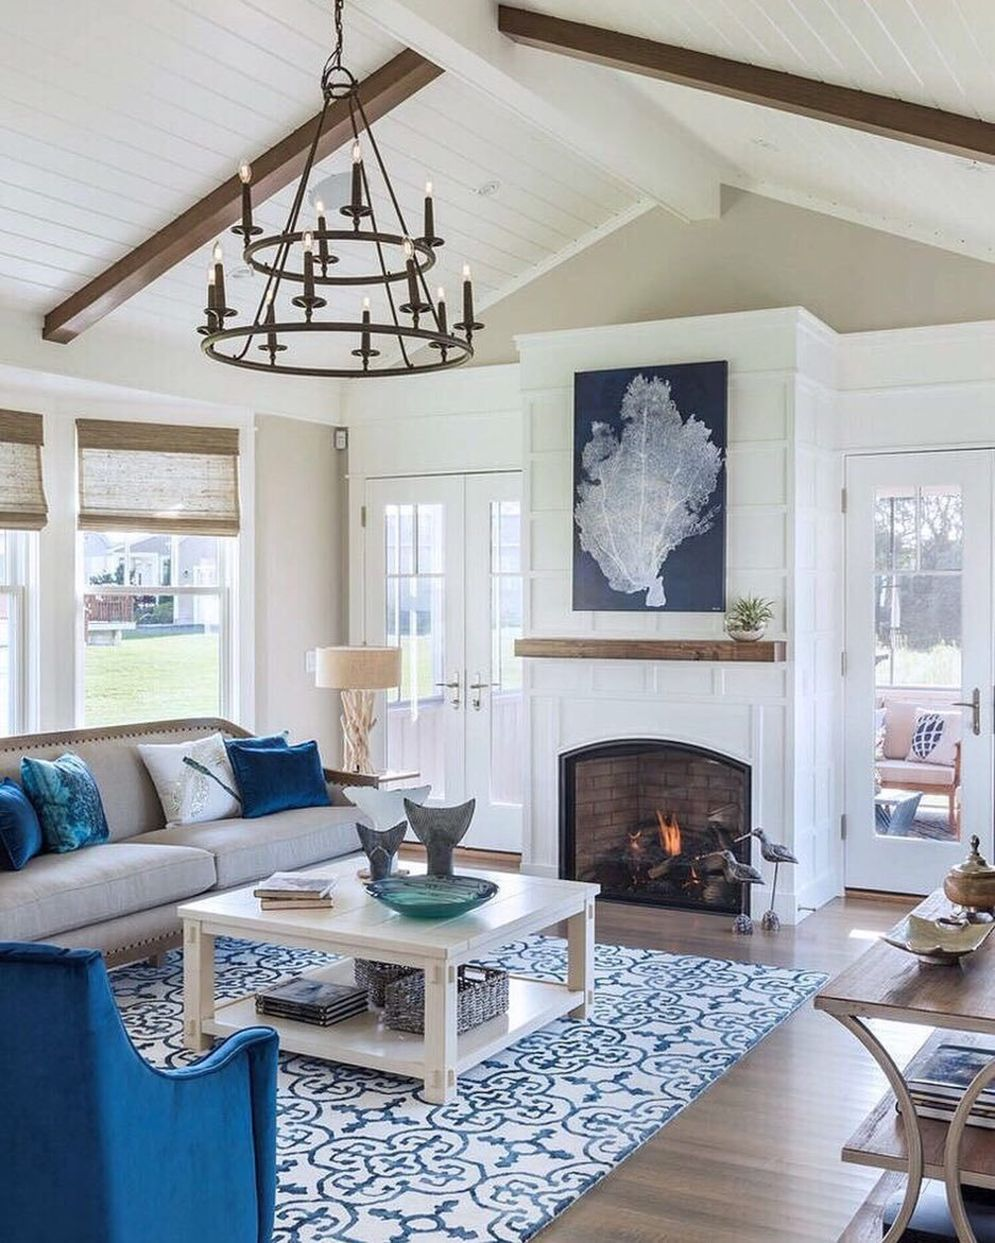 Classic home style with cathedral ceiling which looks gorgeous and grand along with classy interior taste Image 9